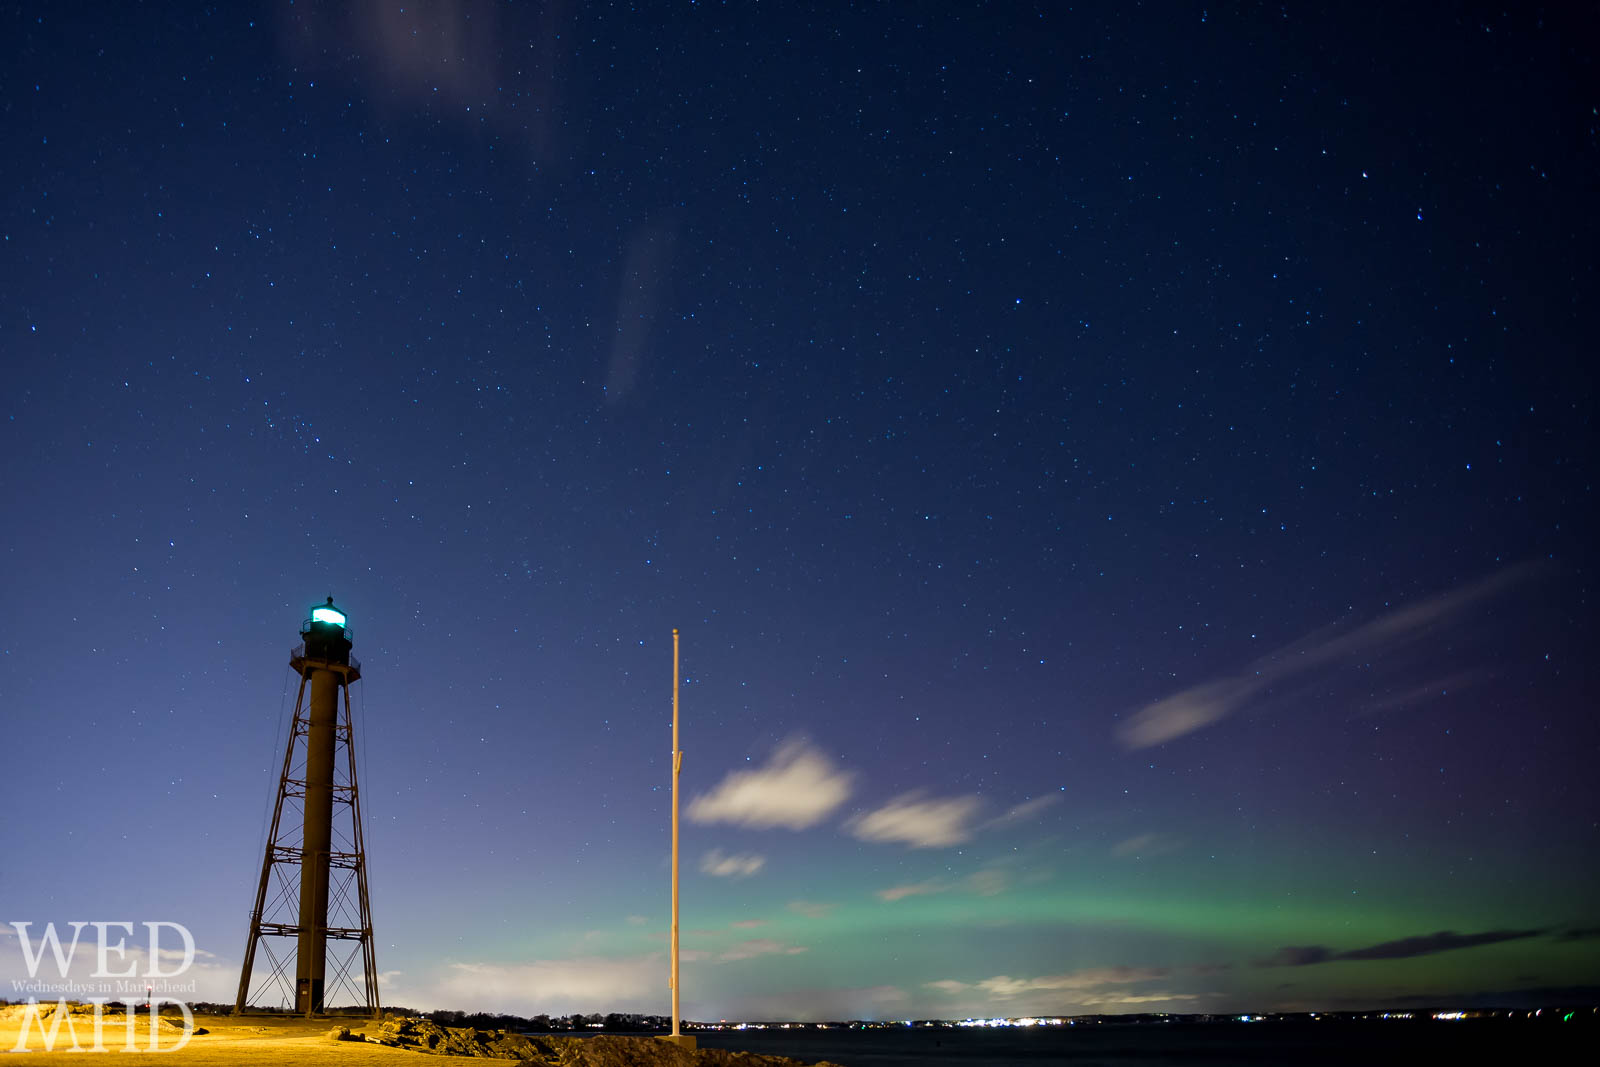 The green glow of the aurora borealis is on display in this view from Marblehead, Massachusetts